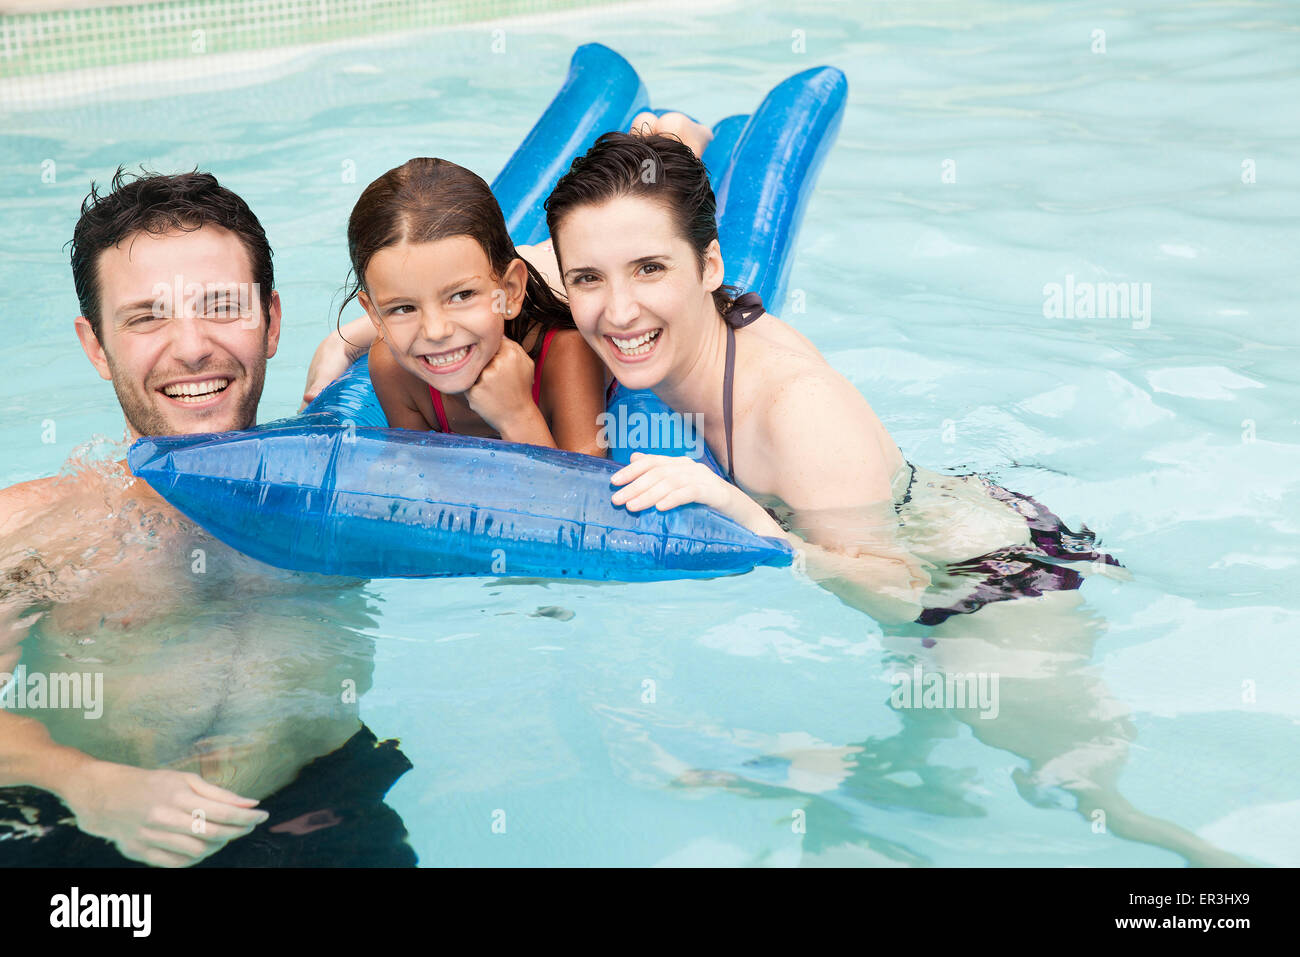 Family playing together in pool - Stock Image